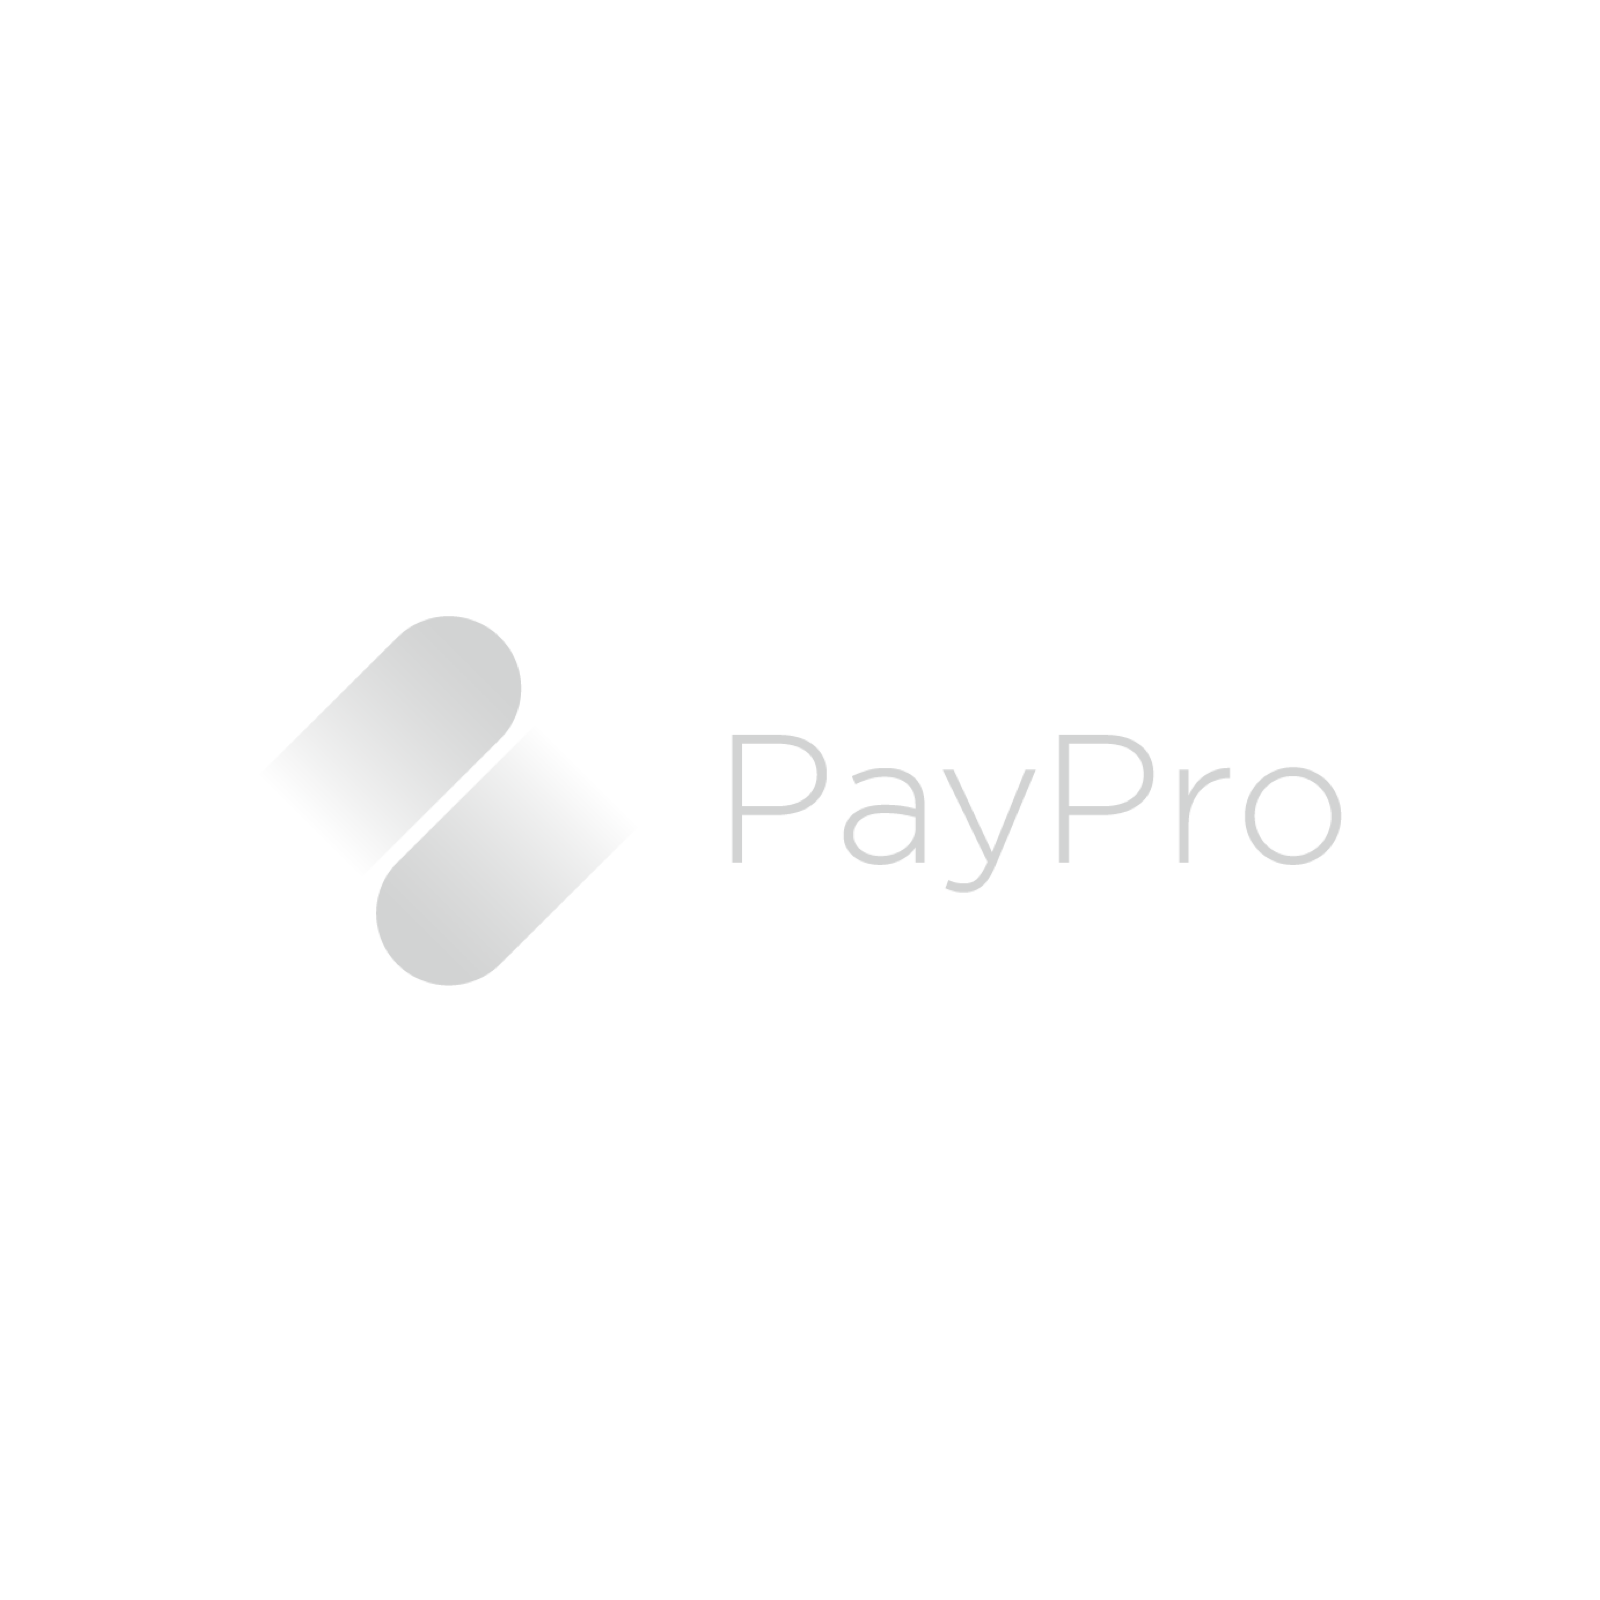 Copy of PayPro Logo